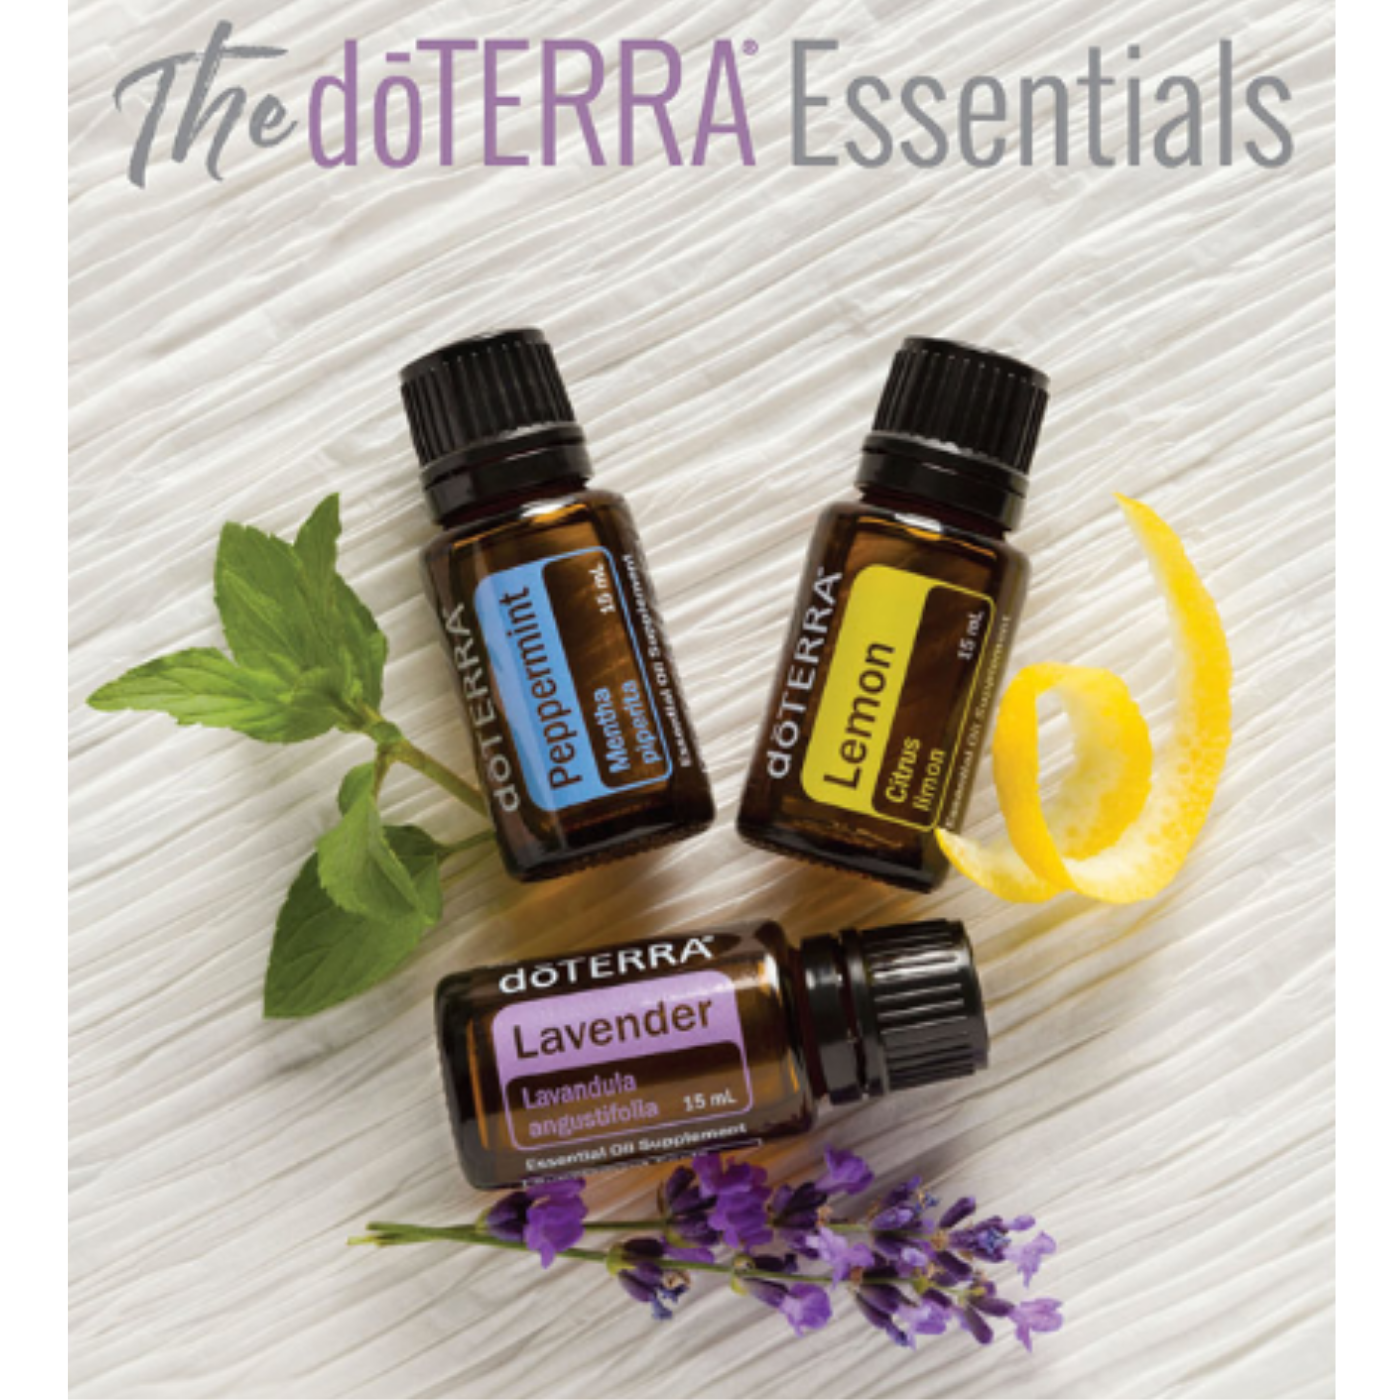 Essential Oils - I have personally used Doterra essential oils for over 5 years, not just for myself but for my family and children. If you have received a recommendation to try essential oils to help manage your health concerns, you can purchase by clicking the link below.